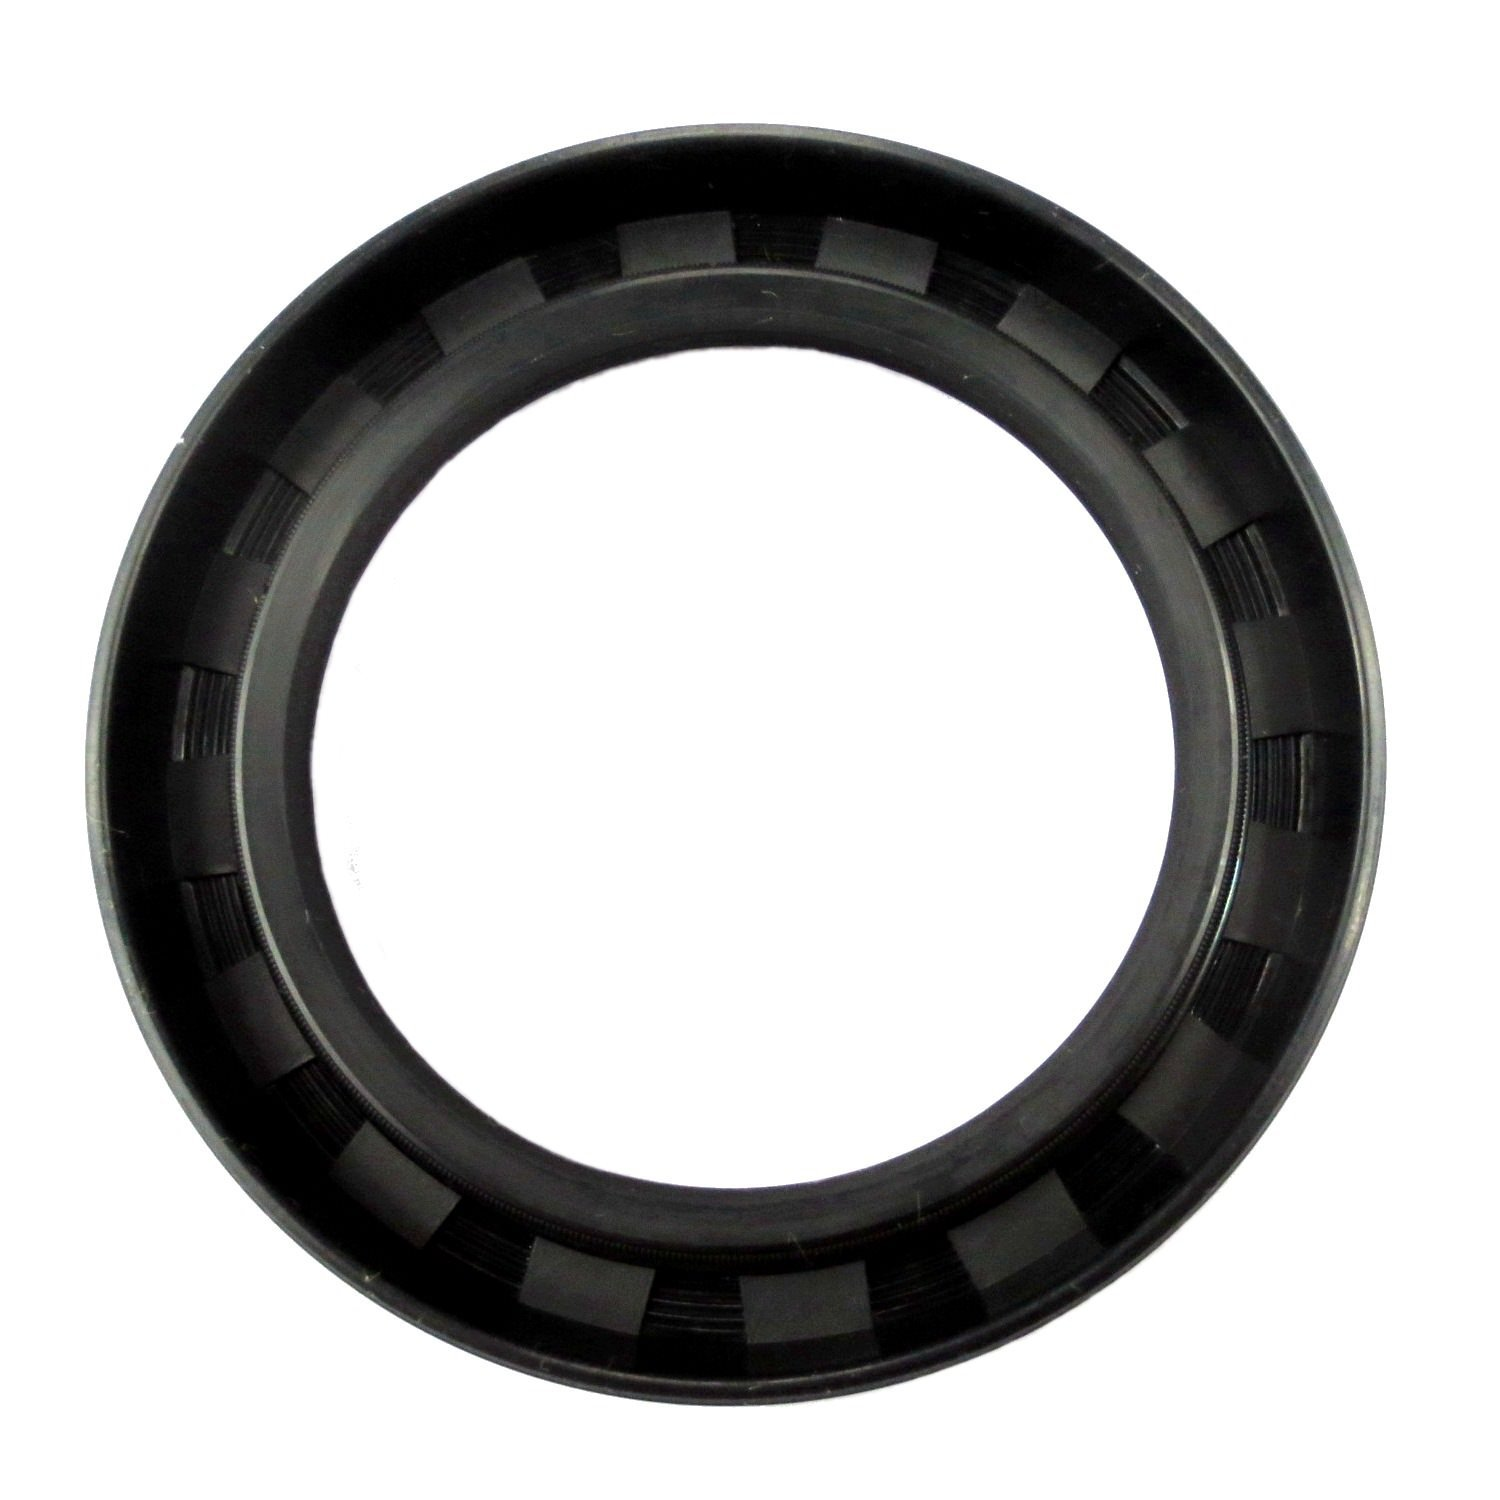 Agriculture Motorcycles Great Wear Resistance And Sealing Effect for General Machinery Mining WSI 50x70x8mm R23//TC Double Lip Nitrile Rotary Shaft Oil Seal with Garter Spring Pumps Transport